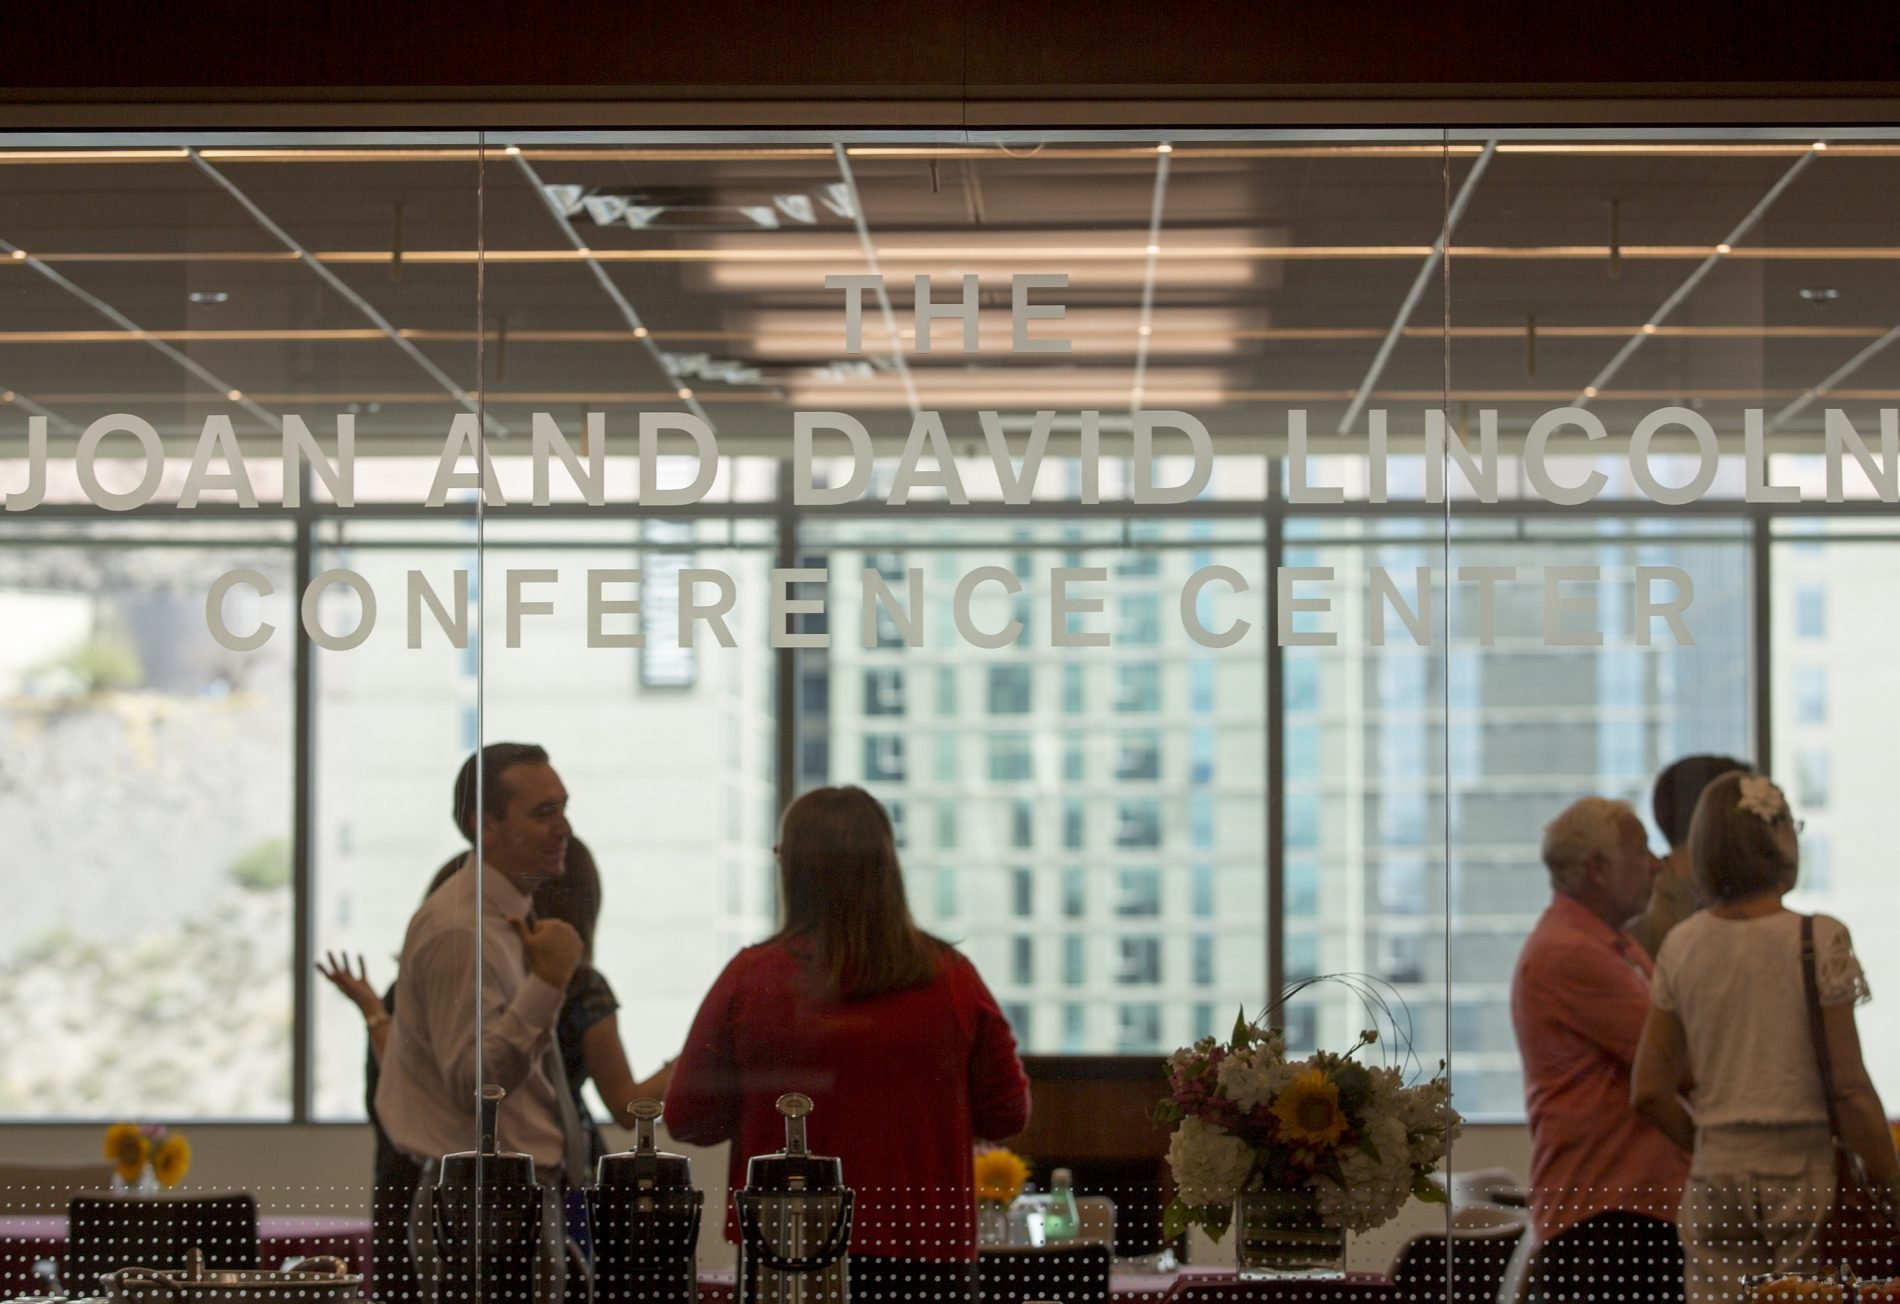 The-Joan-and-David-Conference-Center